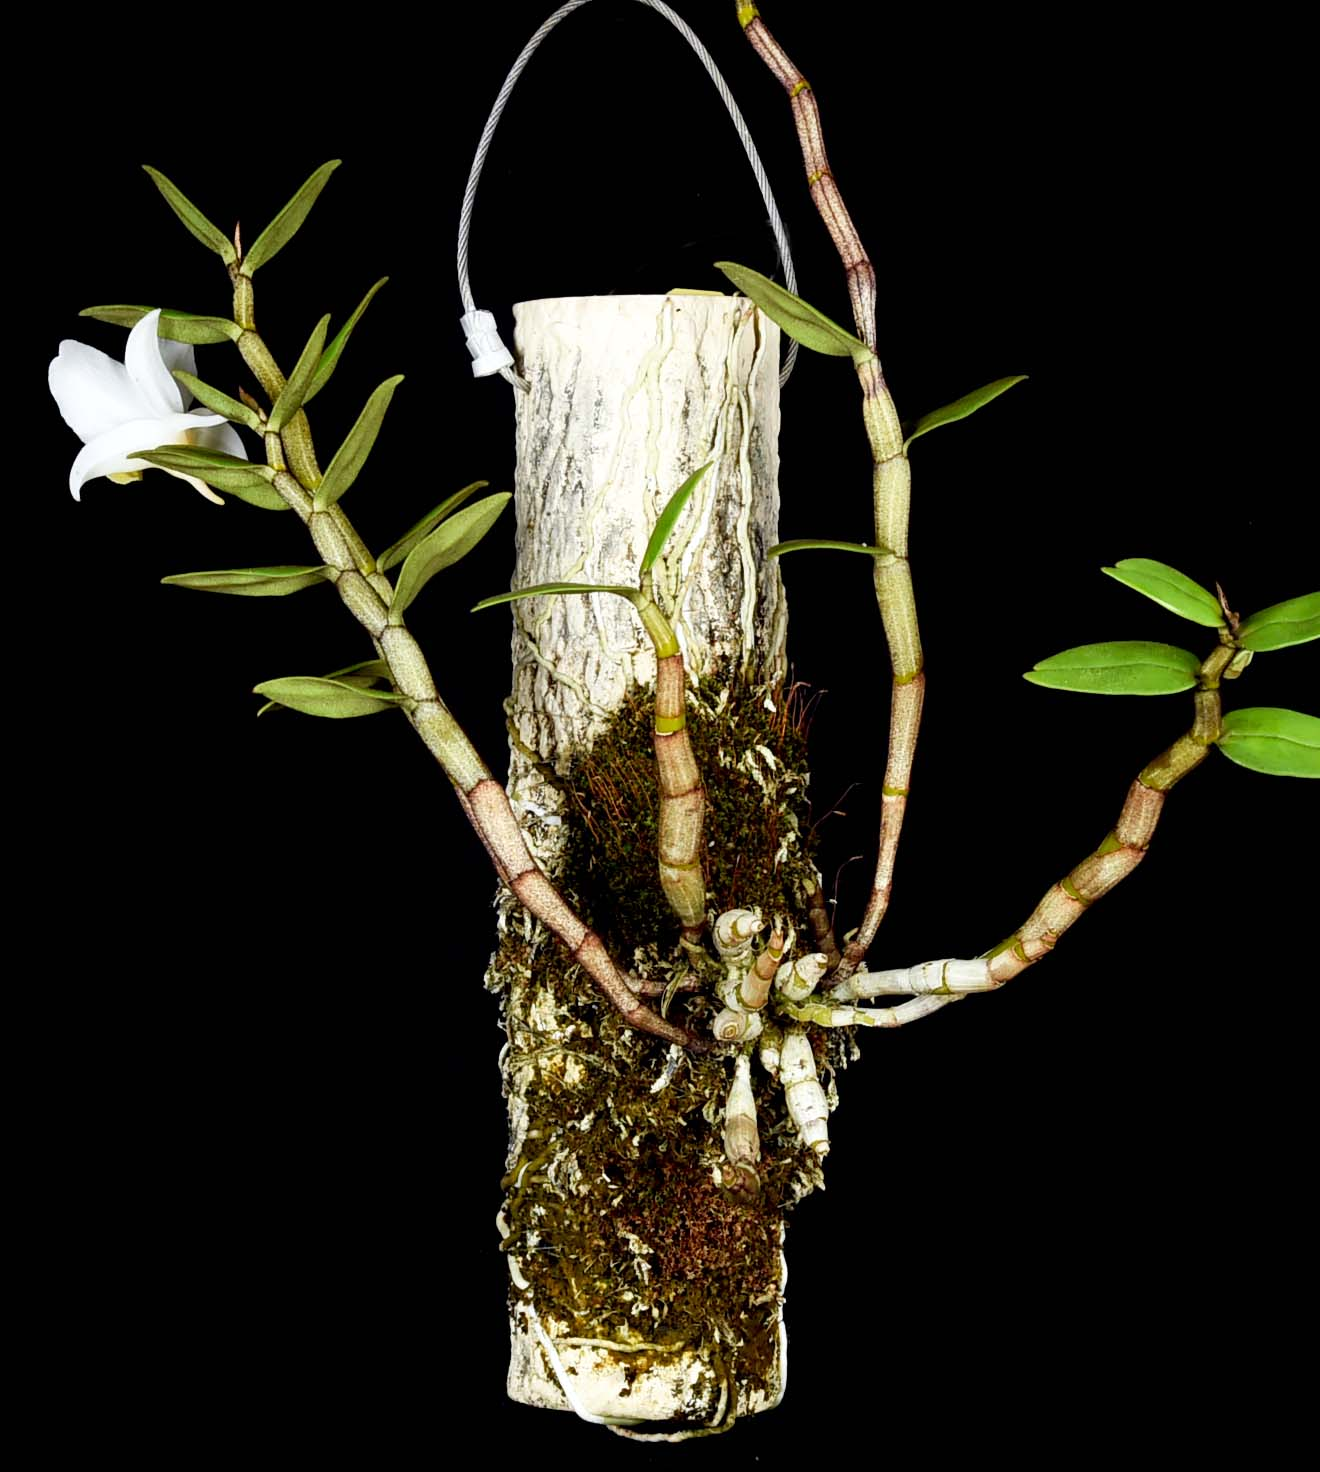 Dendrobium ovipositoriferum